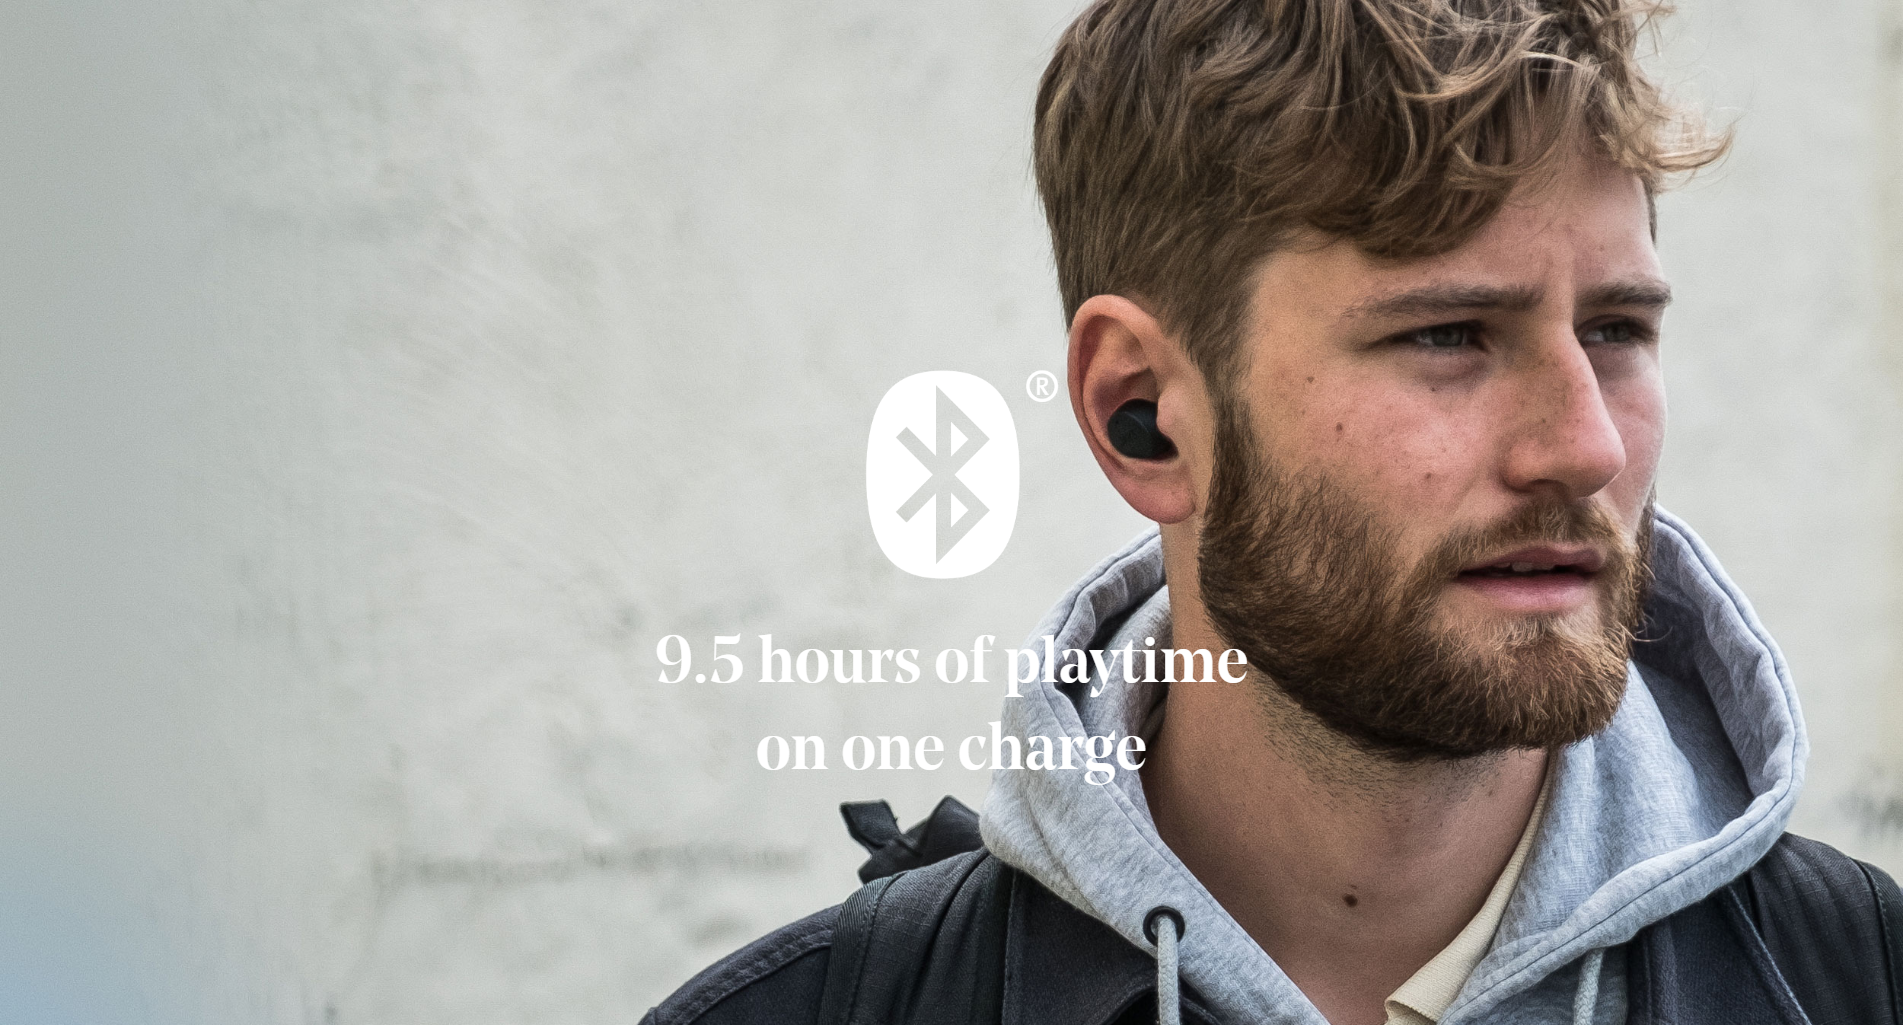 Jays m-Seven True Wireless Earbuds with 9.5 hours of playtime on one charge.